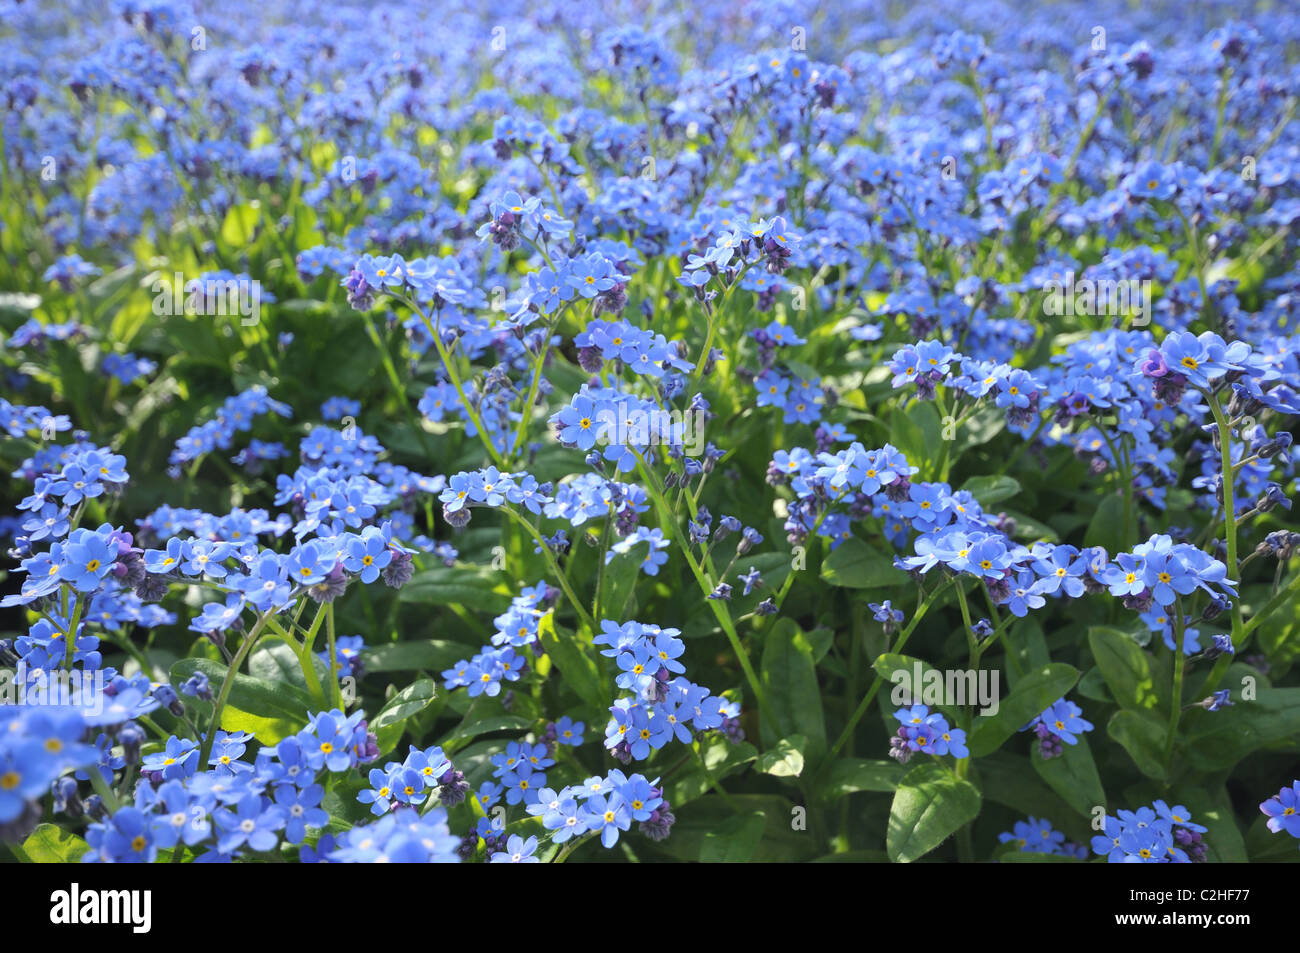 Forget Flowers Tiny Blue Flower Stock Photos Forget Flowers Tiny